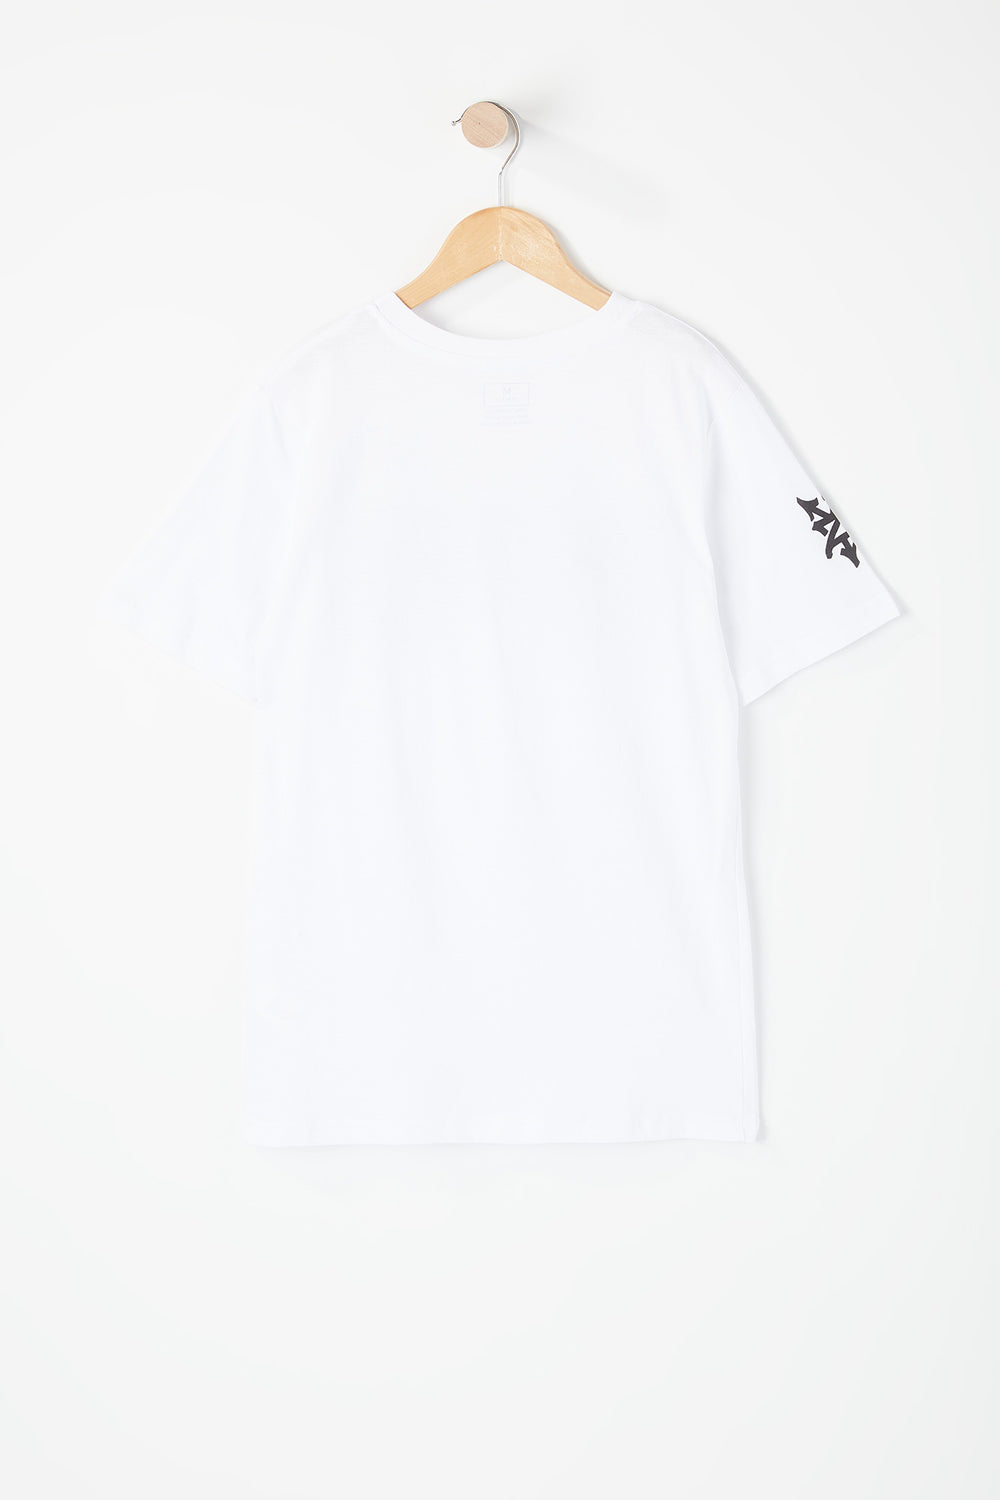 T-Shirt Logo Zoo York Junior Blanc